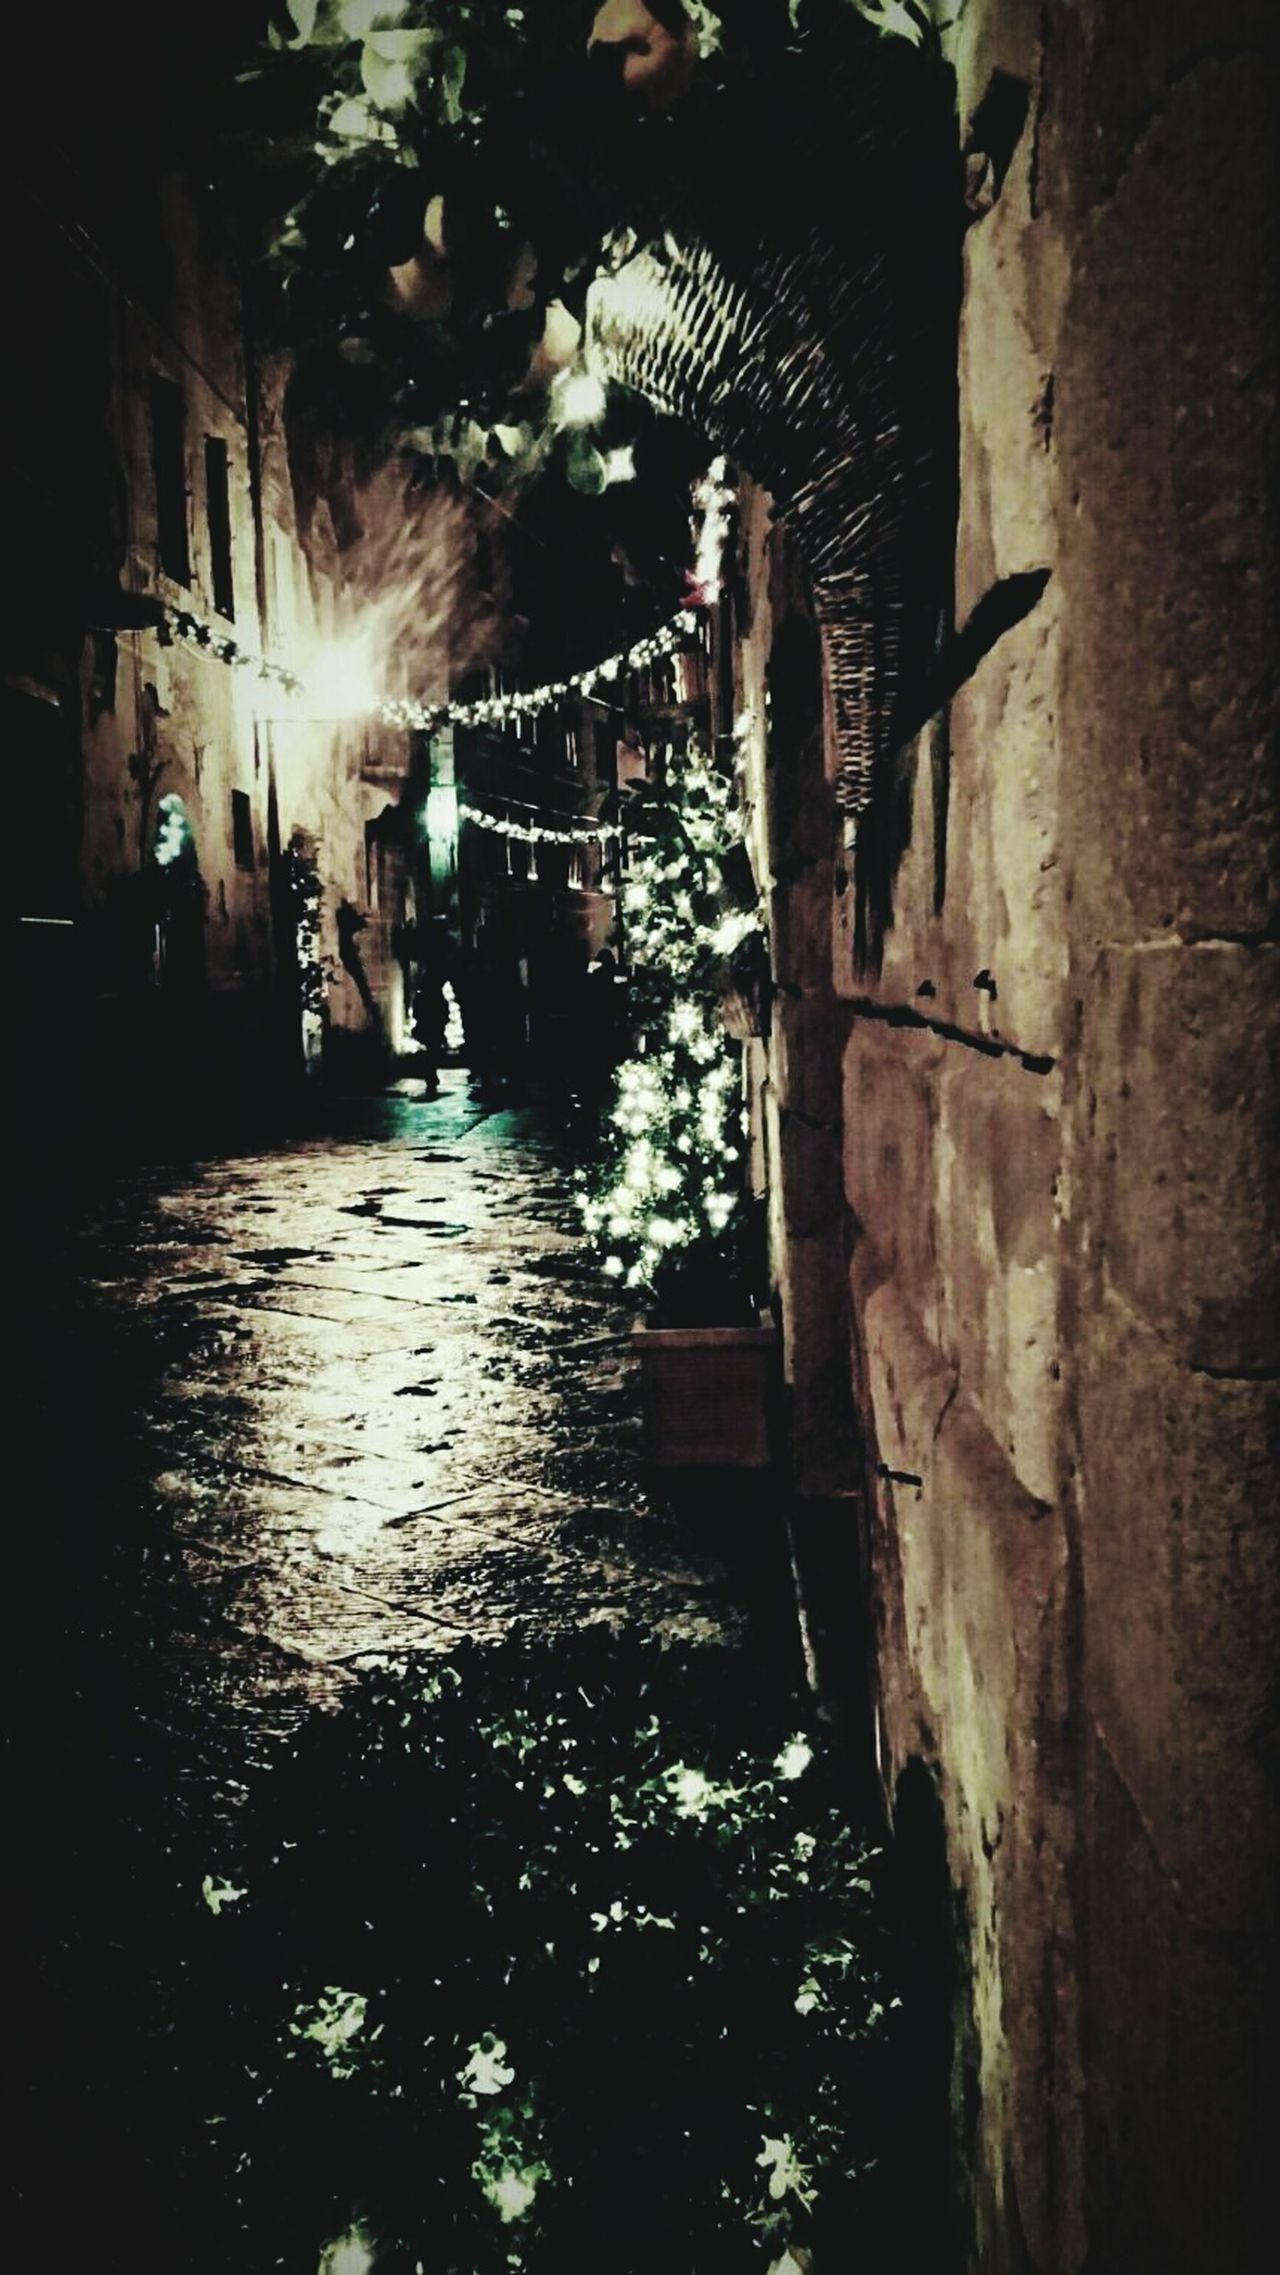 Taking Photos Relaxing Hello World Portraits Enjoying Life Black&white Freedom Pienza (toscana) xmas Lights romanticlights